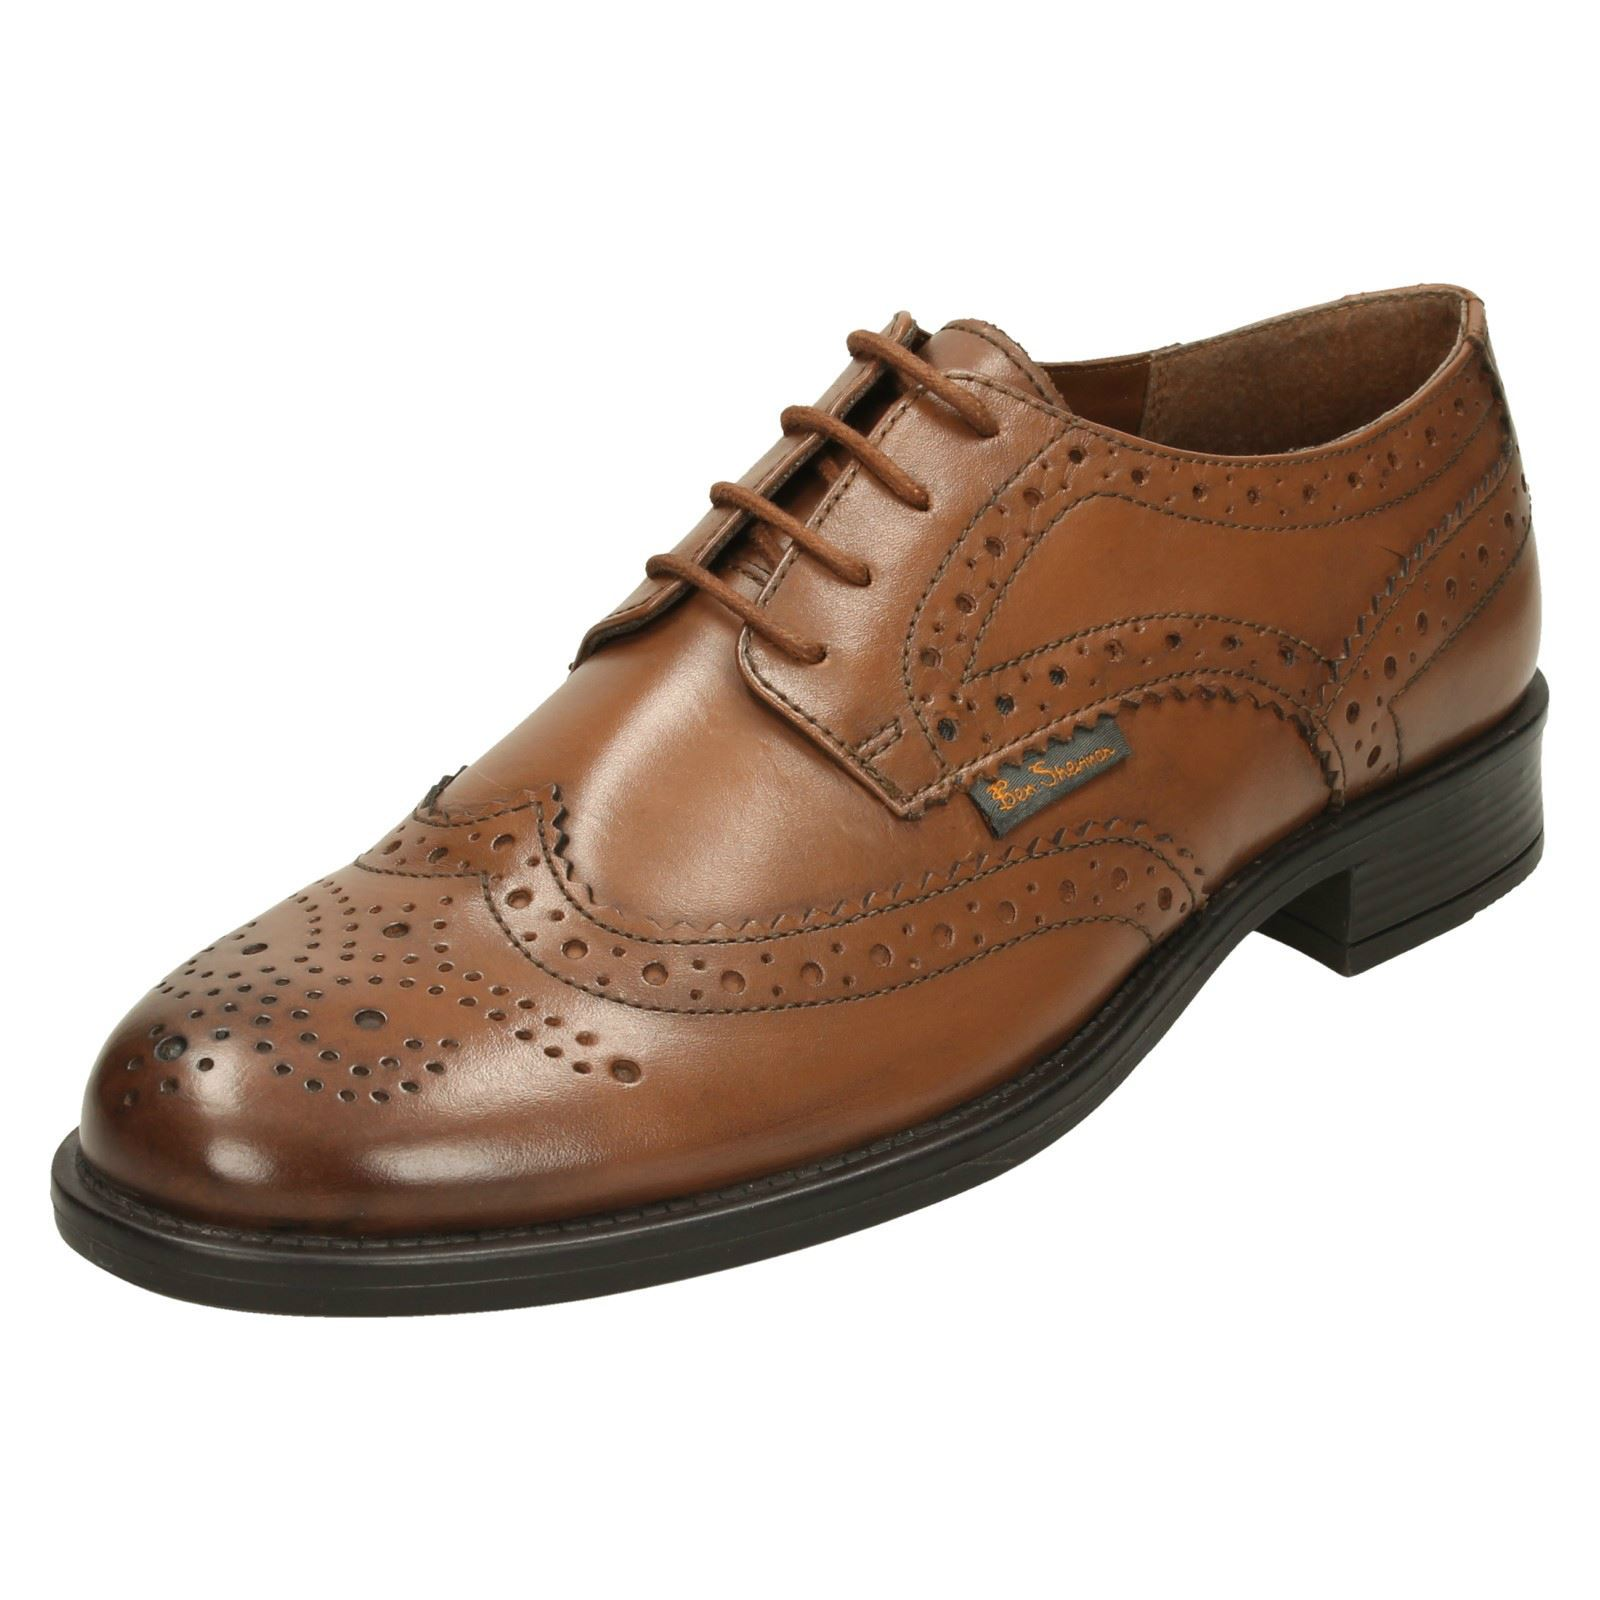 825754fdf29 Ben Sherman Simpson Burnished Tan Leather Brogue Shoes UK 7 EU 41. About  this product. Picture 1 of 7  Picture 2 of 7 ...